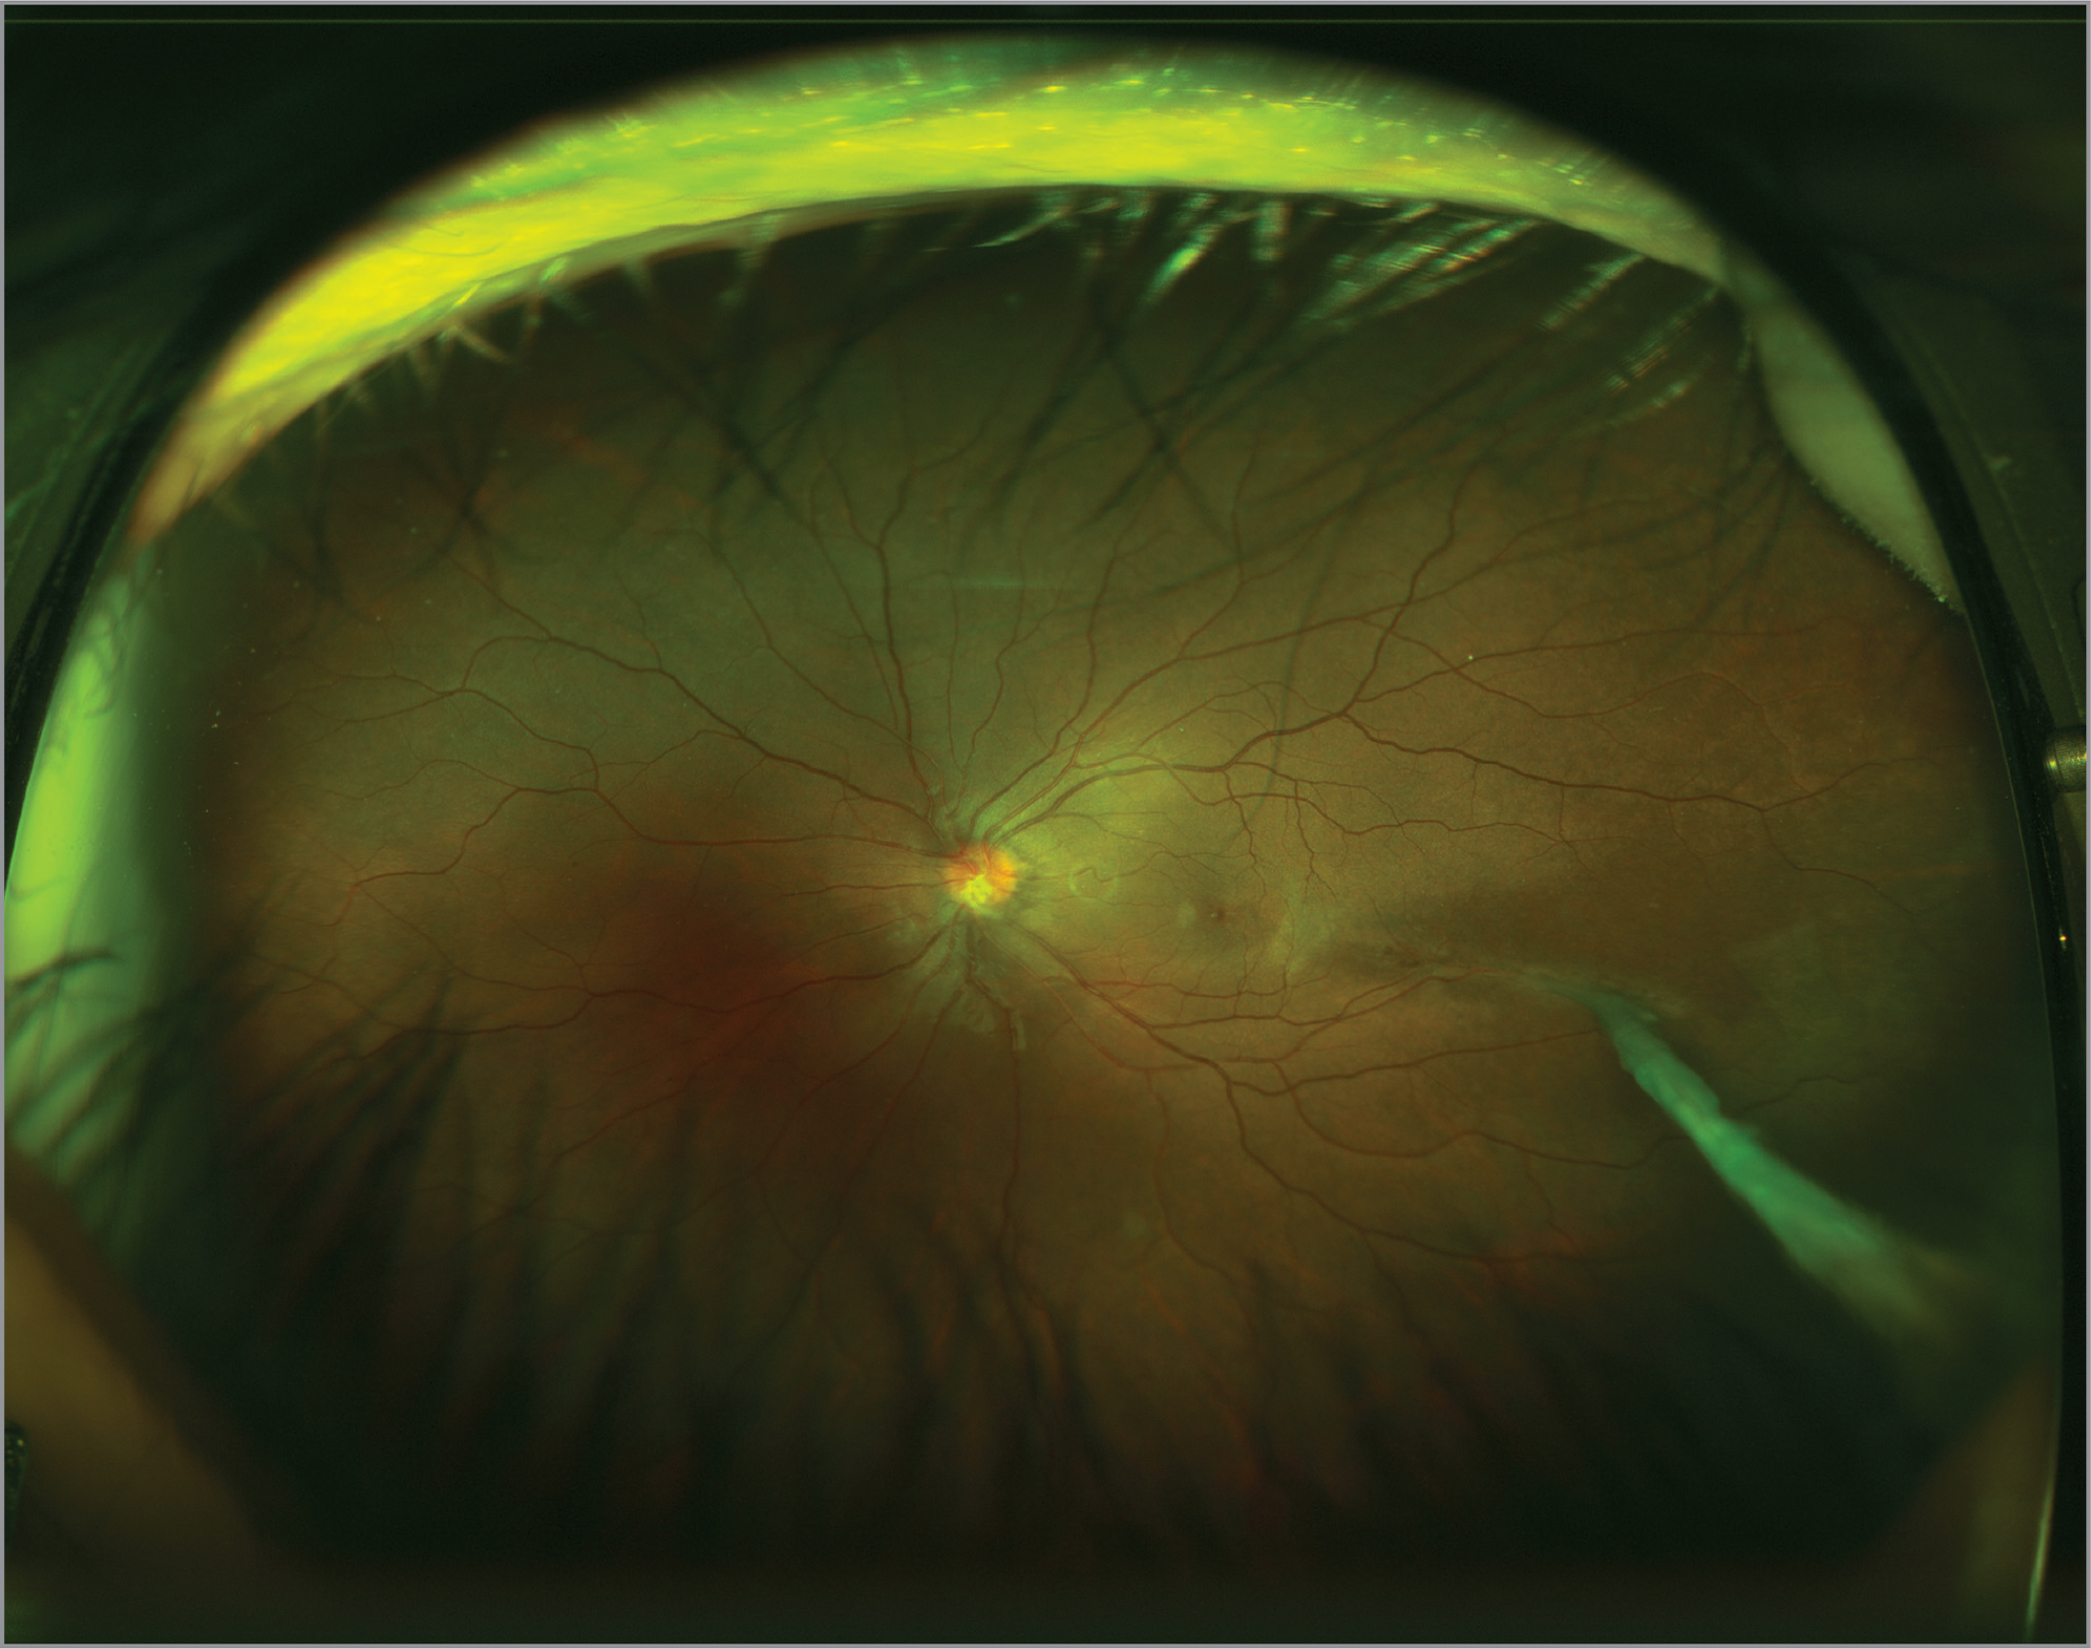 Residual vascular stalk extending antero-temporally in the retina of the left eye status post-vitrectomy and amputation of the primary stalk over the optic nerve head. Close evaluation demonstrates the residual stalk remnants as whitish fibrosis overlying the optic nerve head inferiorly.